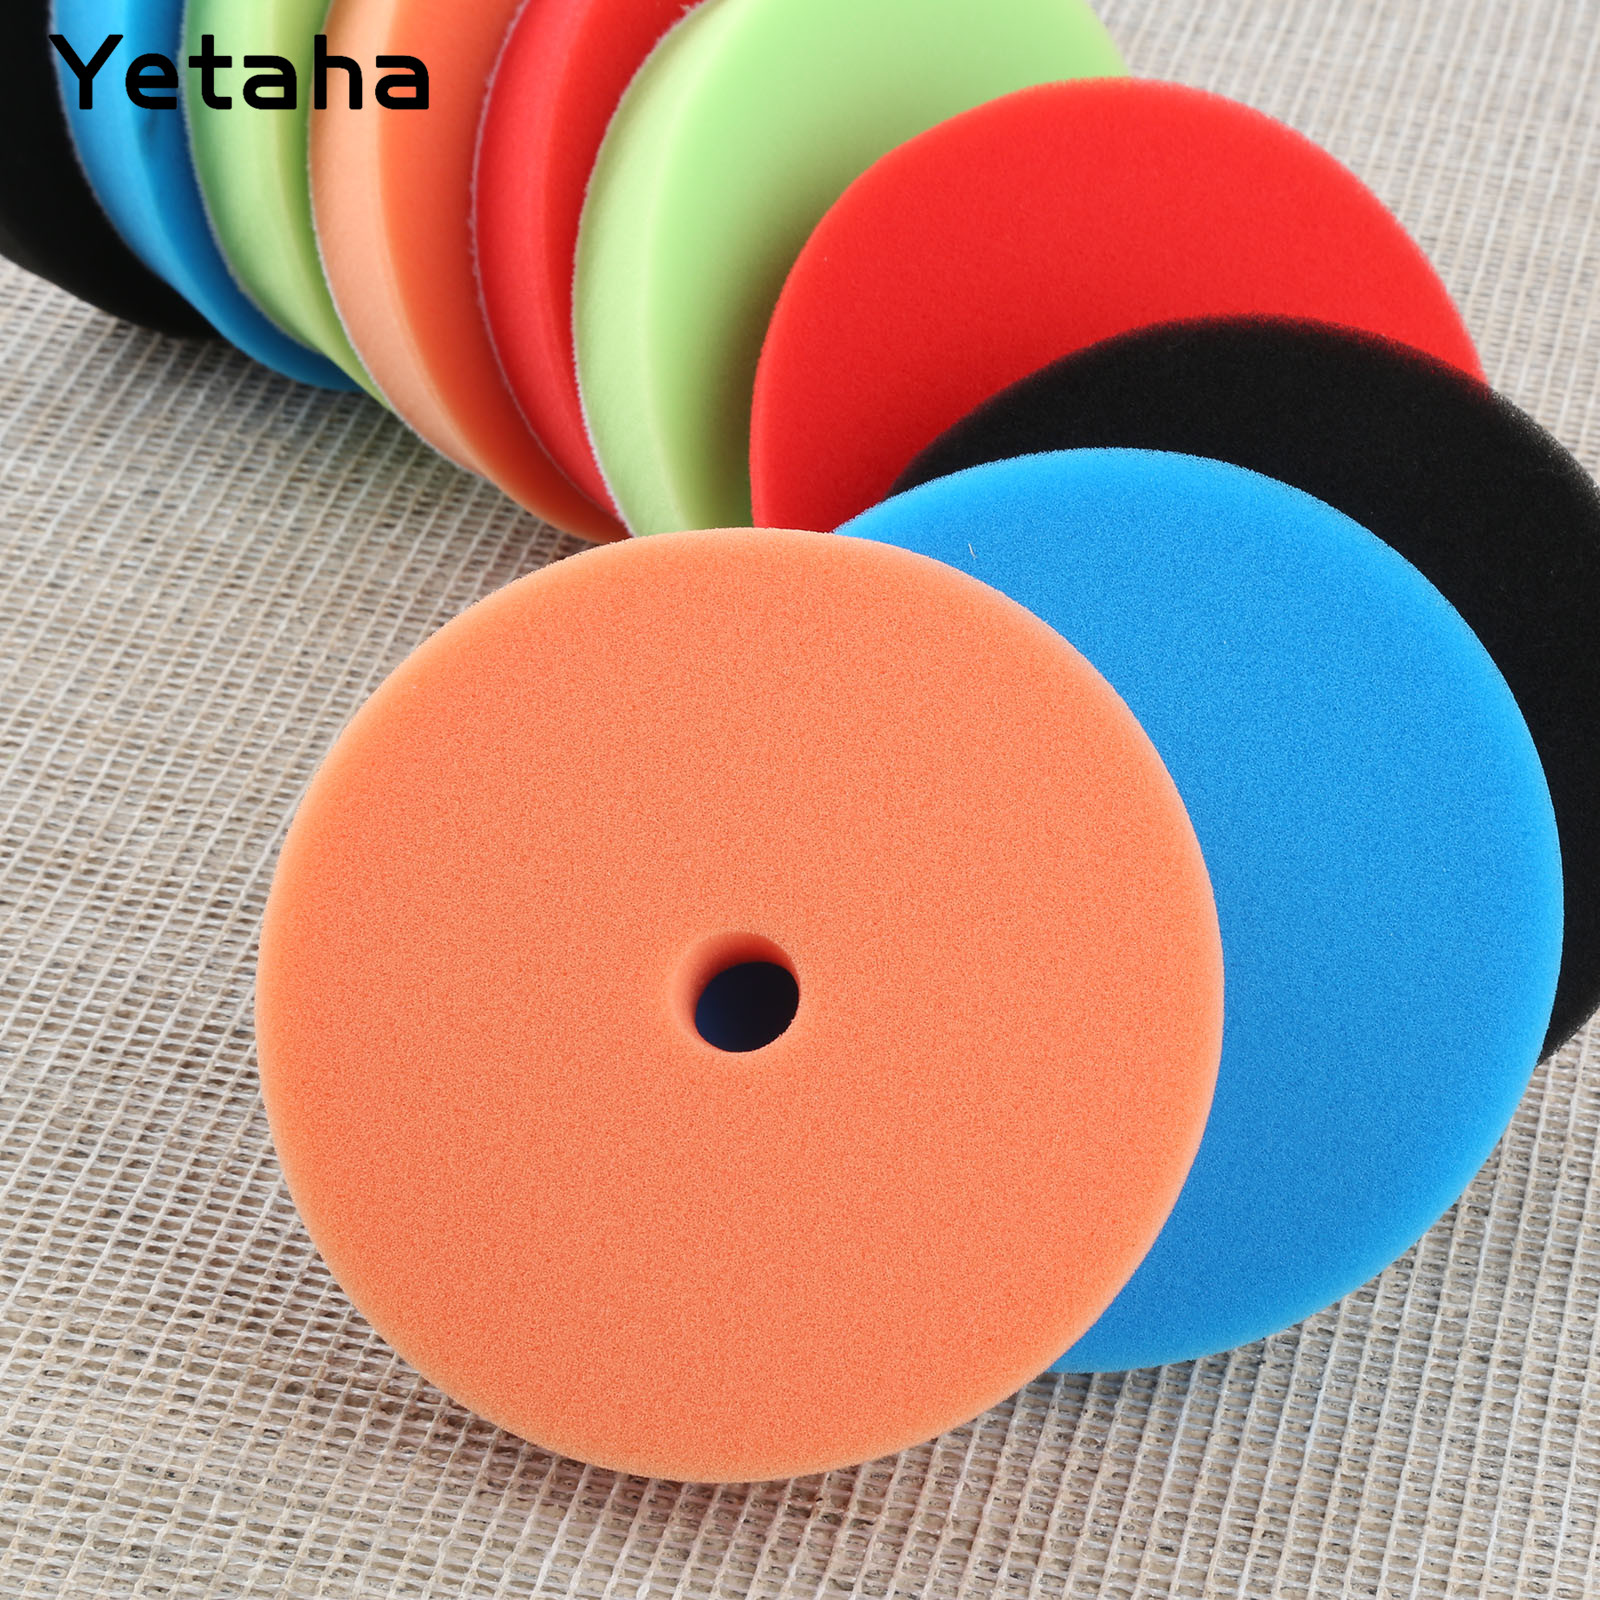 Image 4 - Yetaha 5Pcs 6inch 150mm Car Polishing Buffing Sponge Pads Set Car Wash For Car Polisher Cleaning Detailing Polishing Tool-in Sponges, Cloths & Brushes from Automobiles & Motorcycles